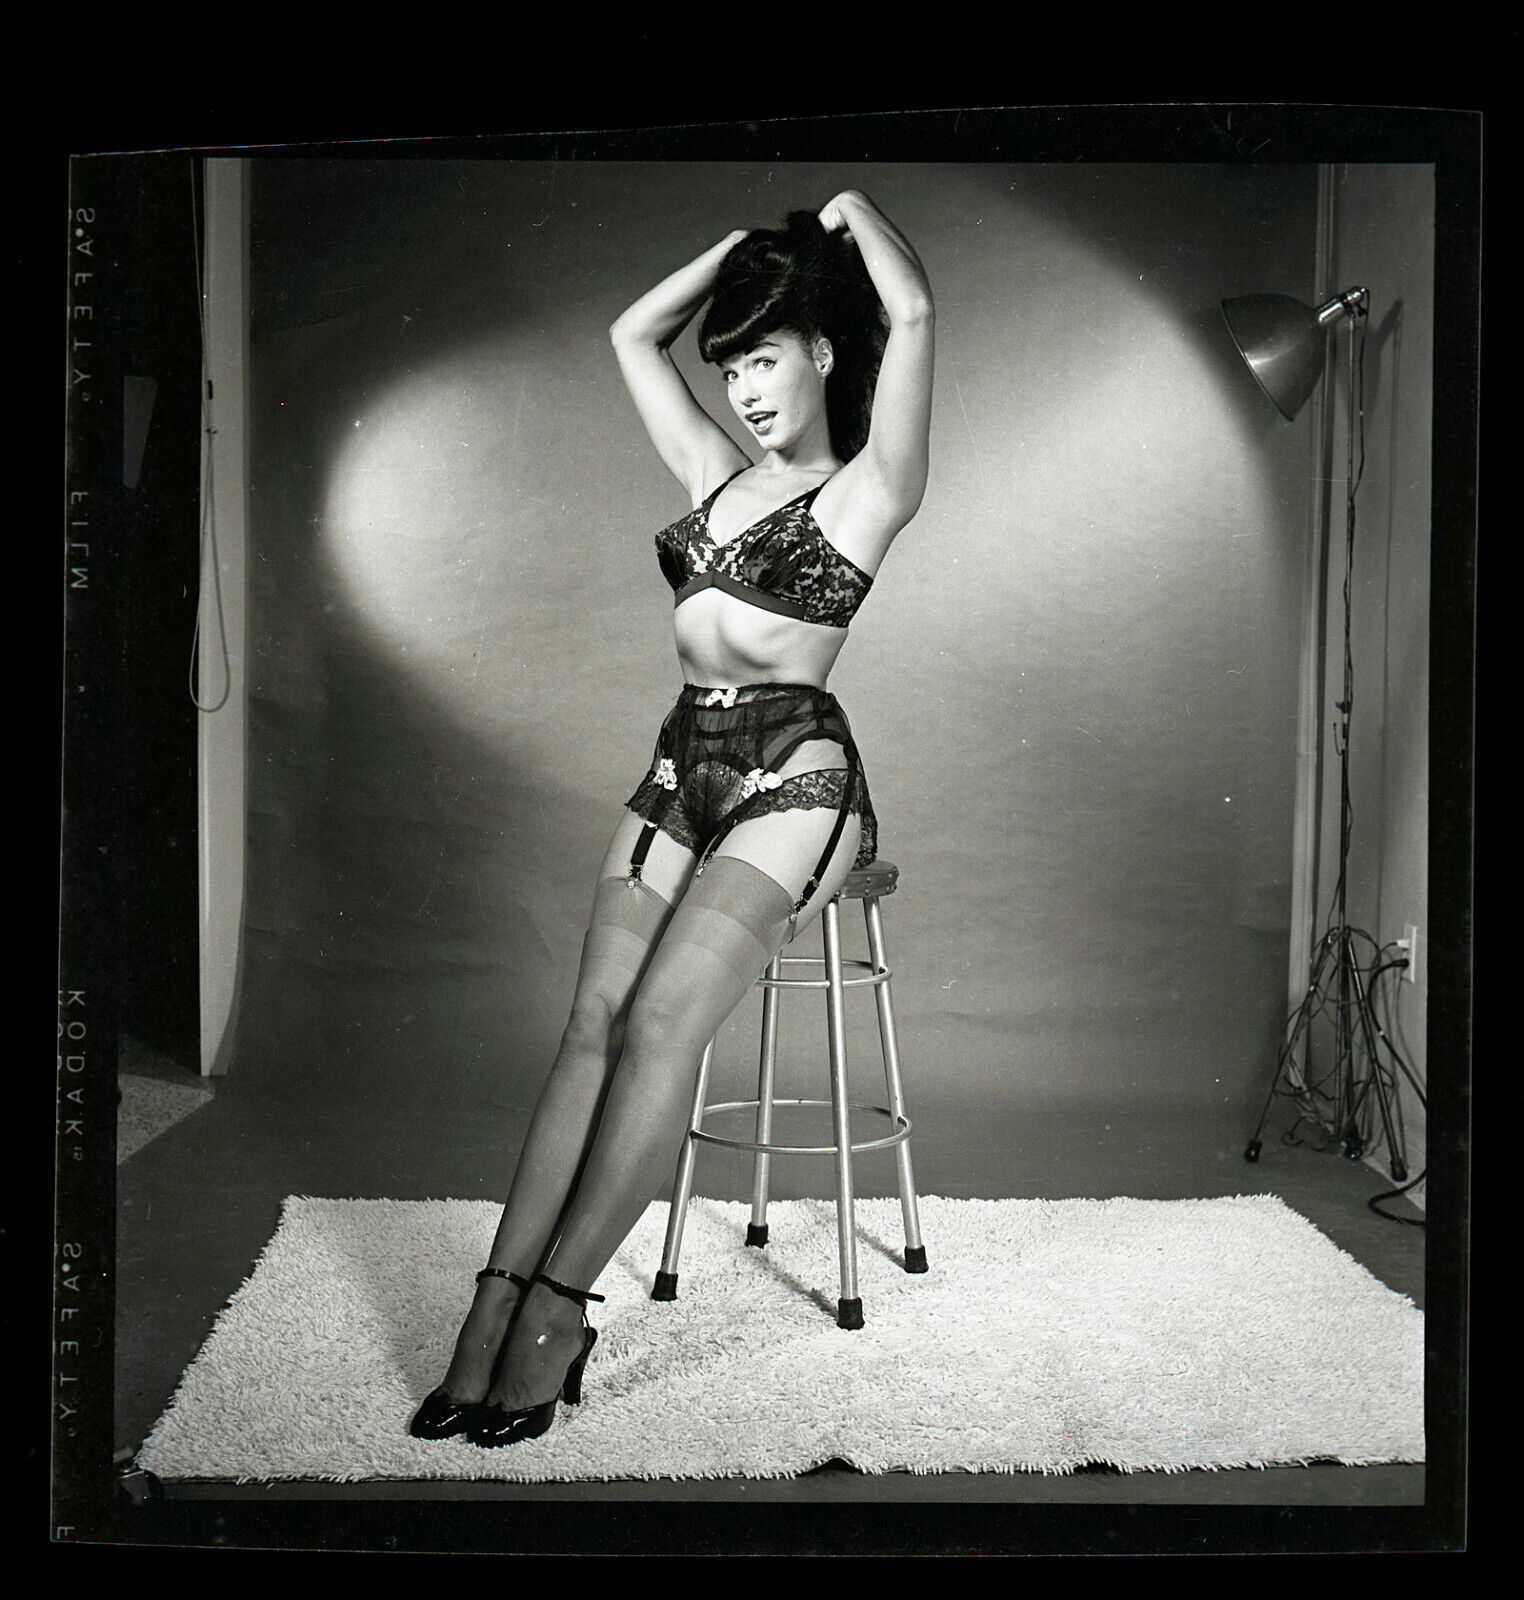 RARE BETTIE PAGE Lingerie Pinup Original 1954 2 1/4 Camera Negative Bunny Yeager - $1,525.00